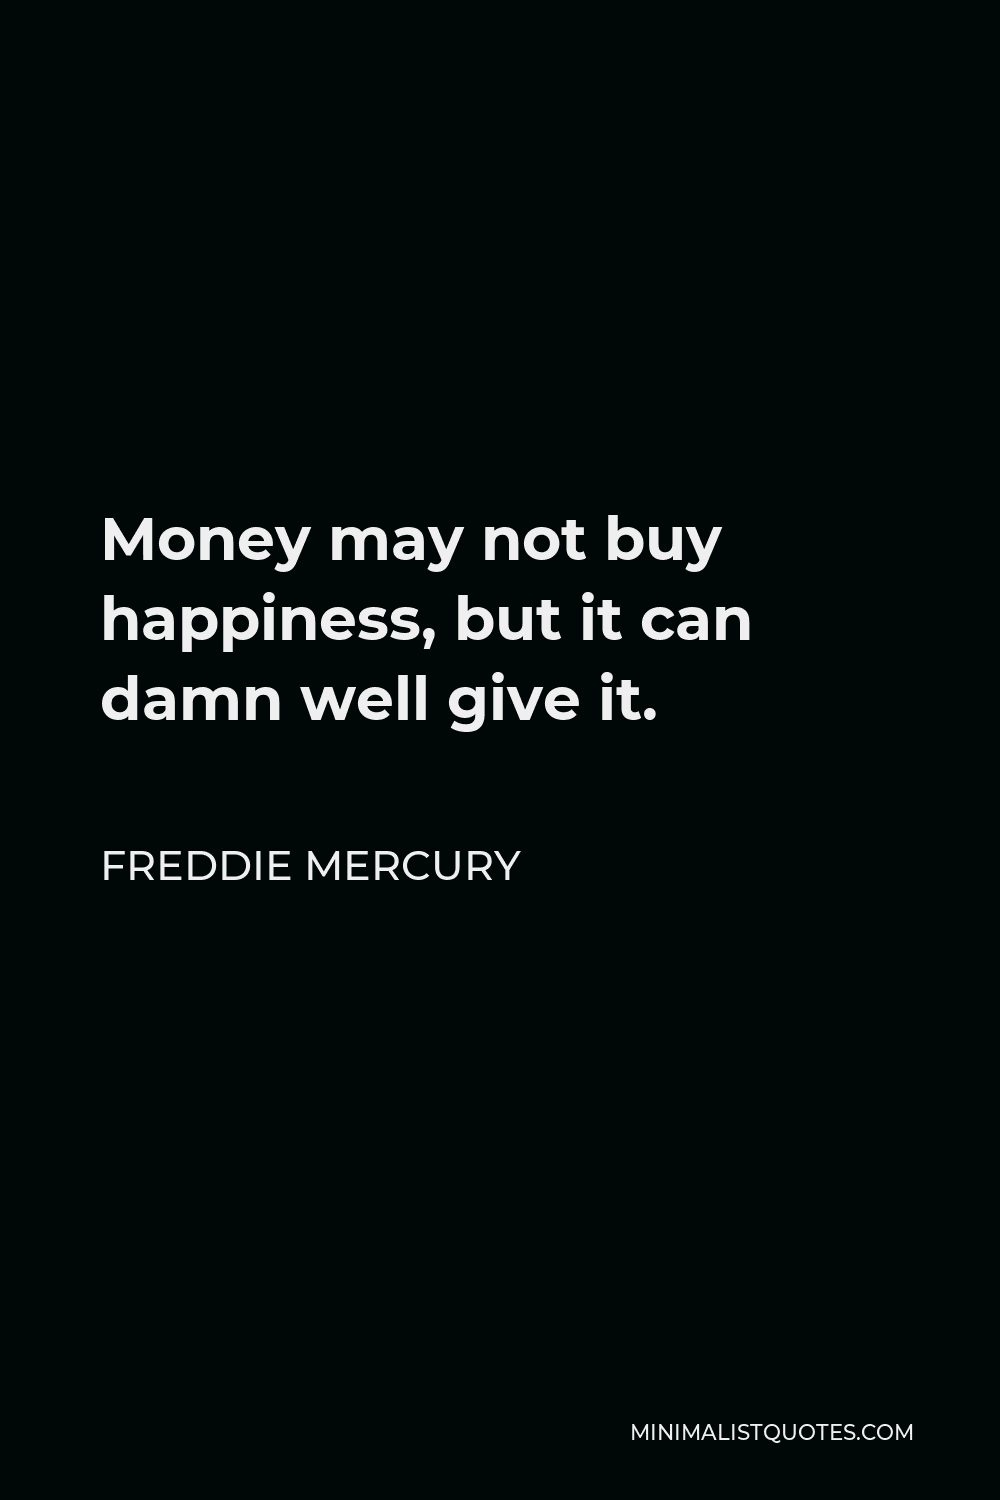 Freddie Mercury Quote - Money may not buy happiness, but it can damn well give it.